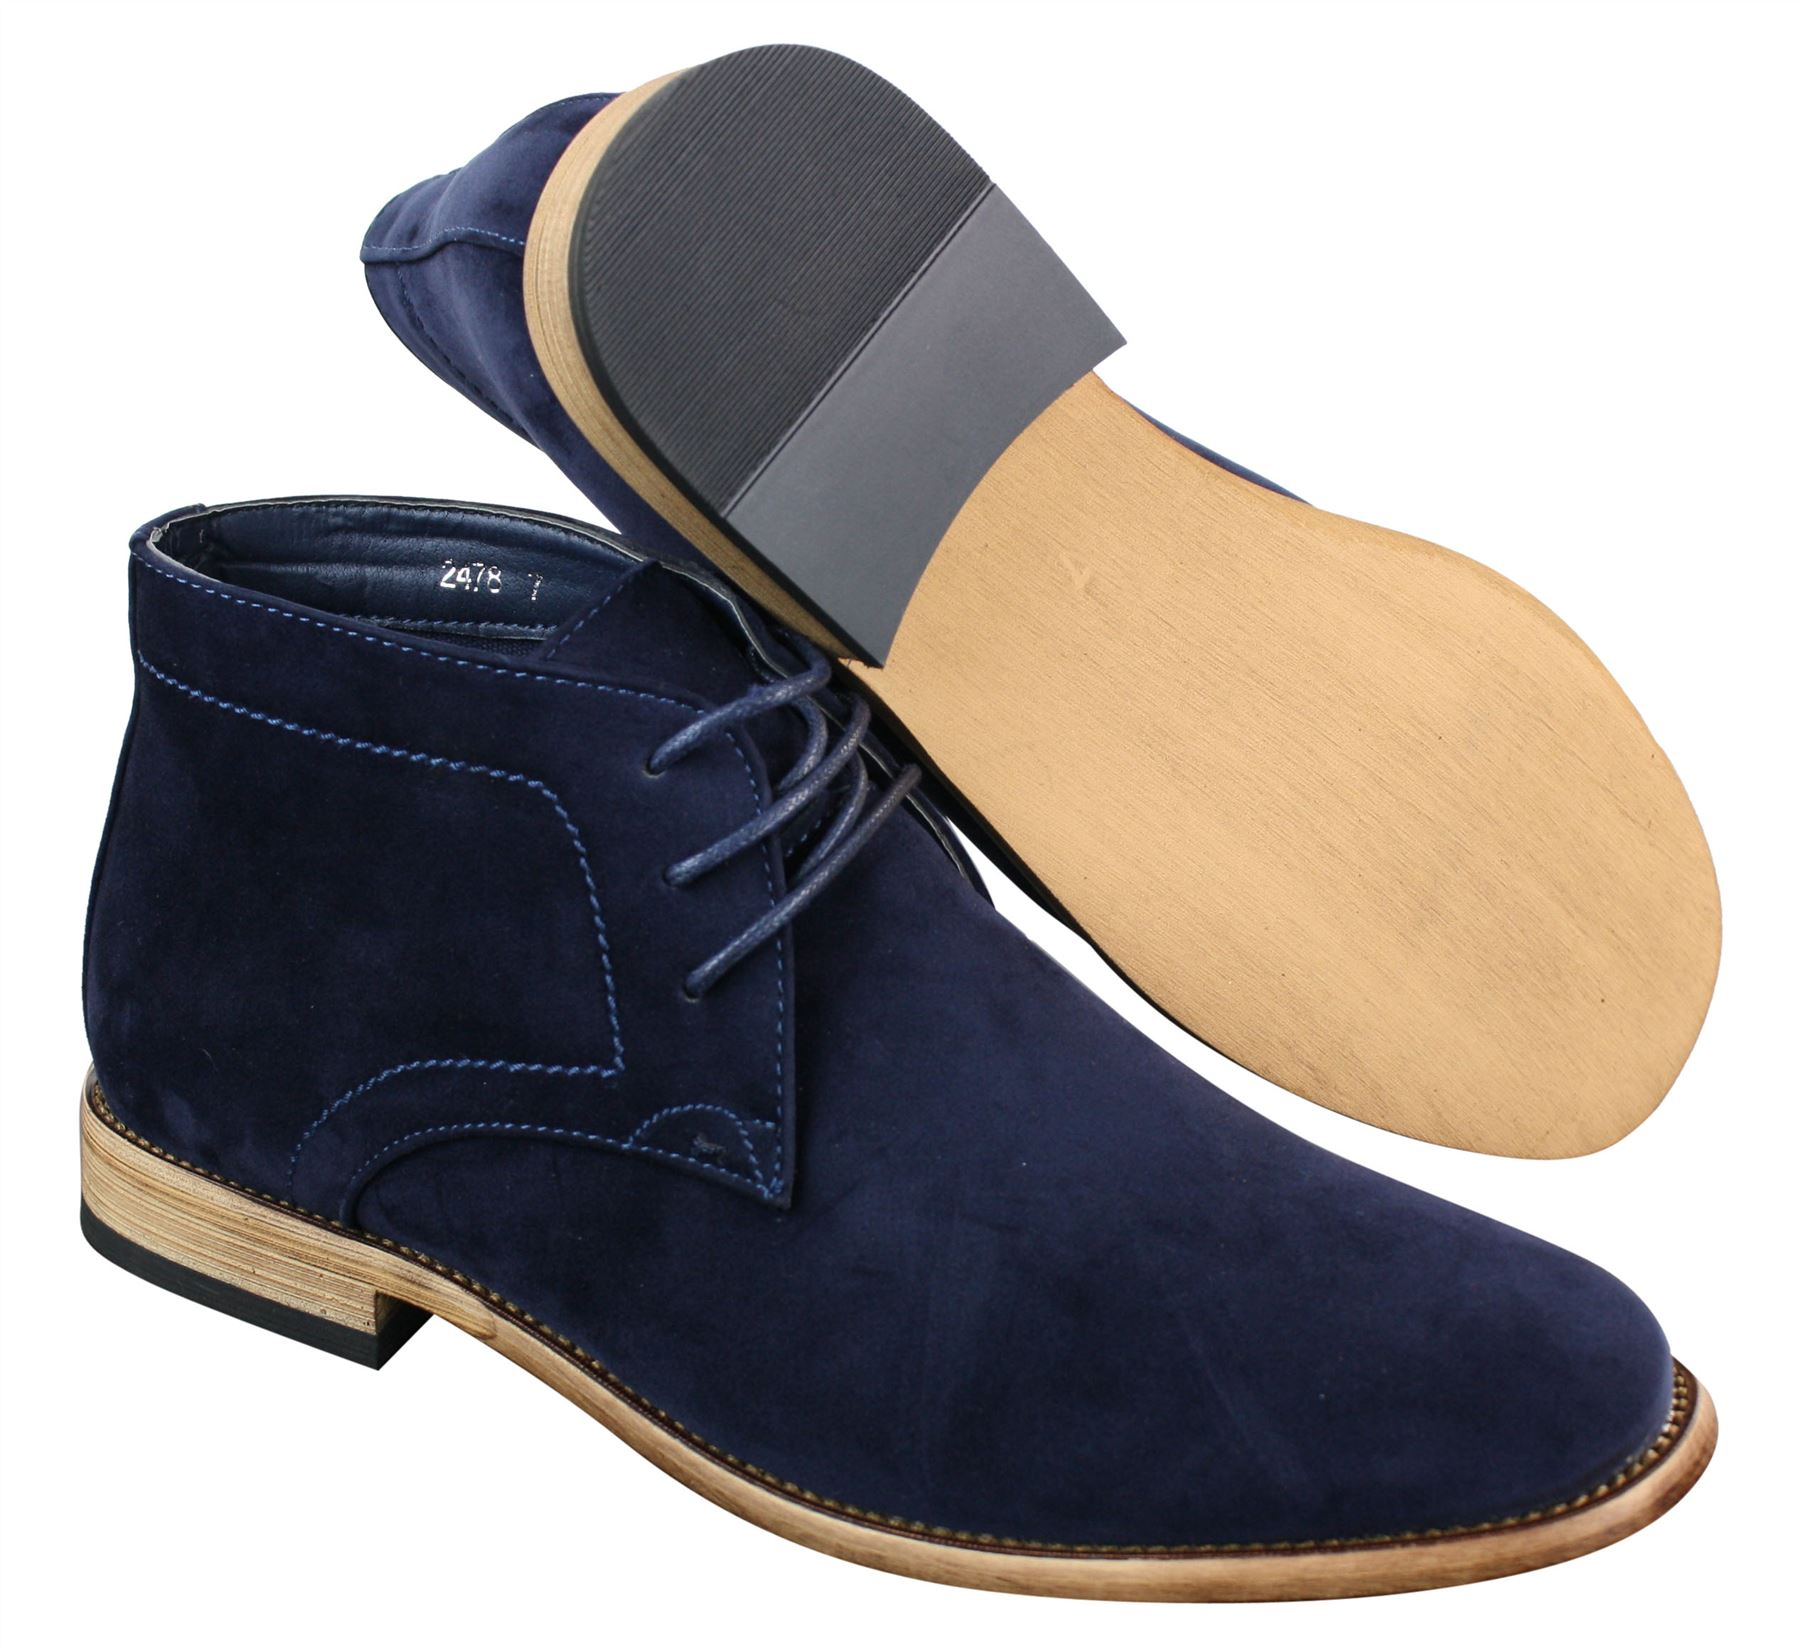 ce2fe84d4ec Mens Suede Lace Ankle Chukka Boots Chelsea Dealer Shoes Navy Blue ...